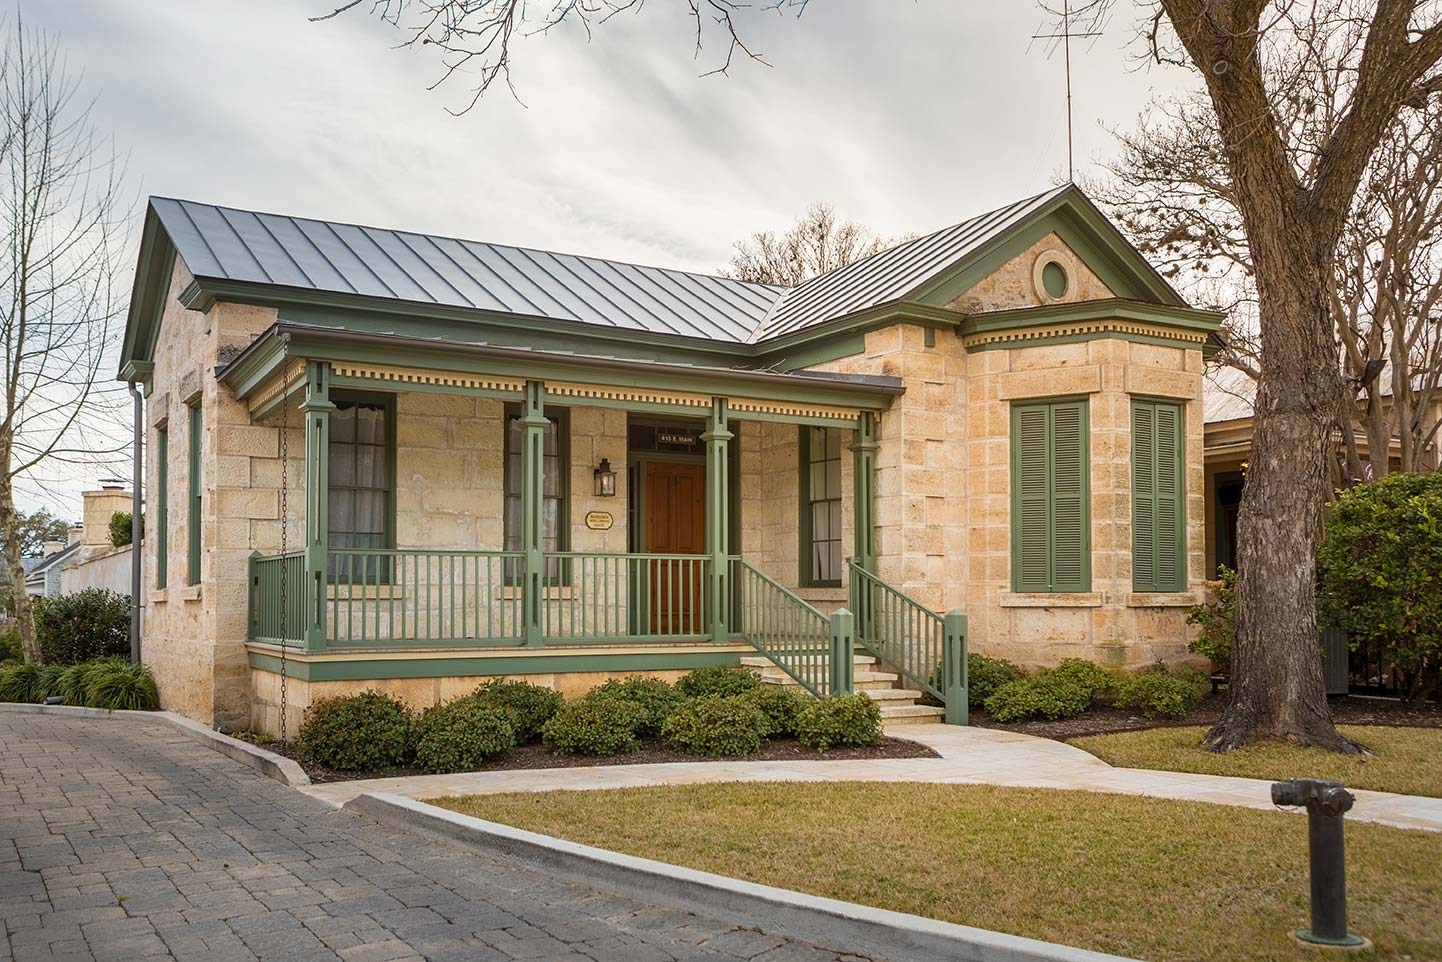 blacksmith-quarters-fredericksburg-realty-cabins-for-sale-in-texas-hill-country.jpg